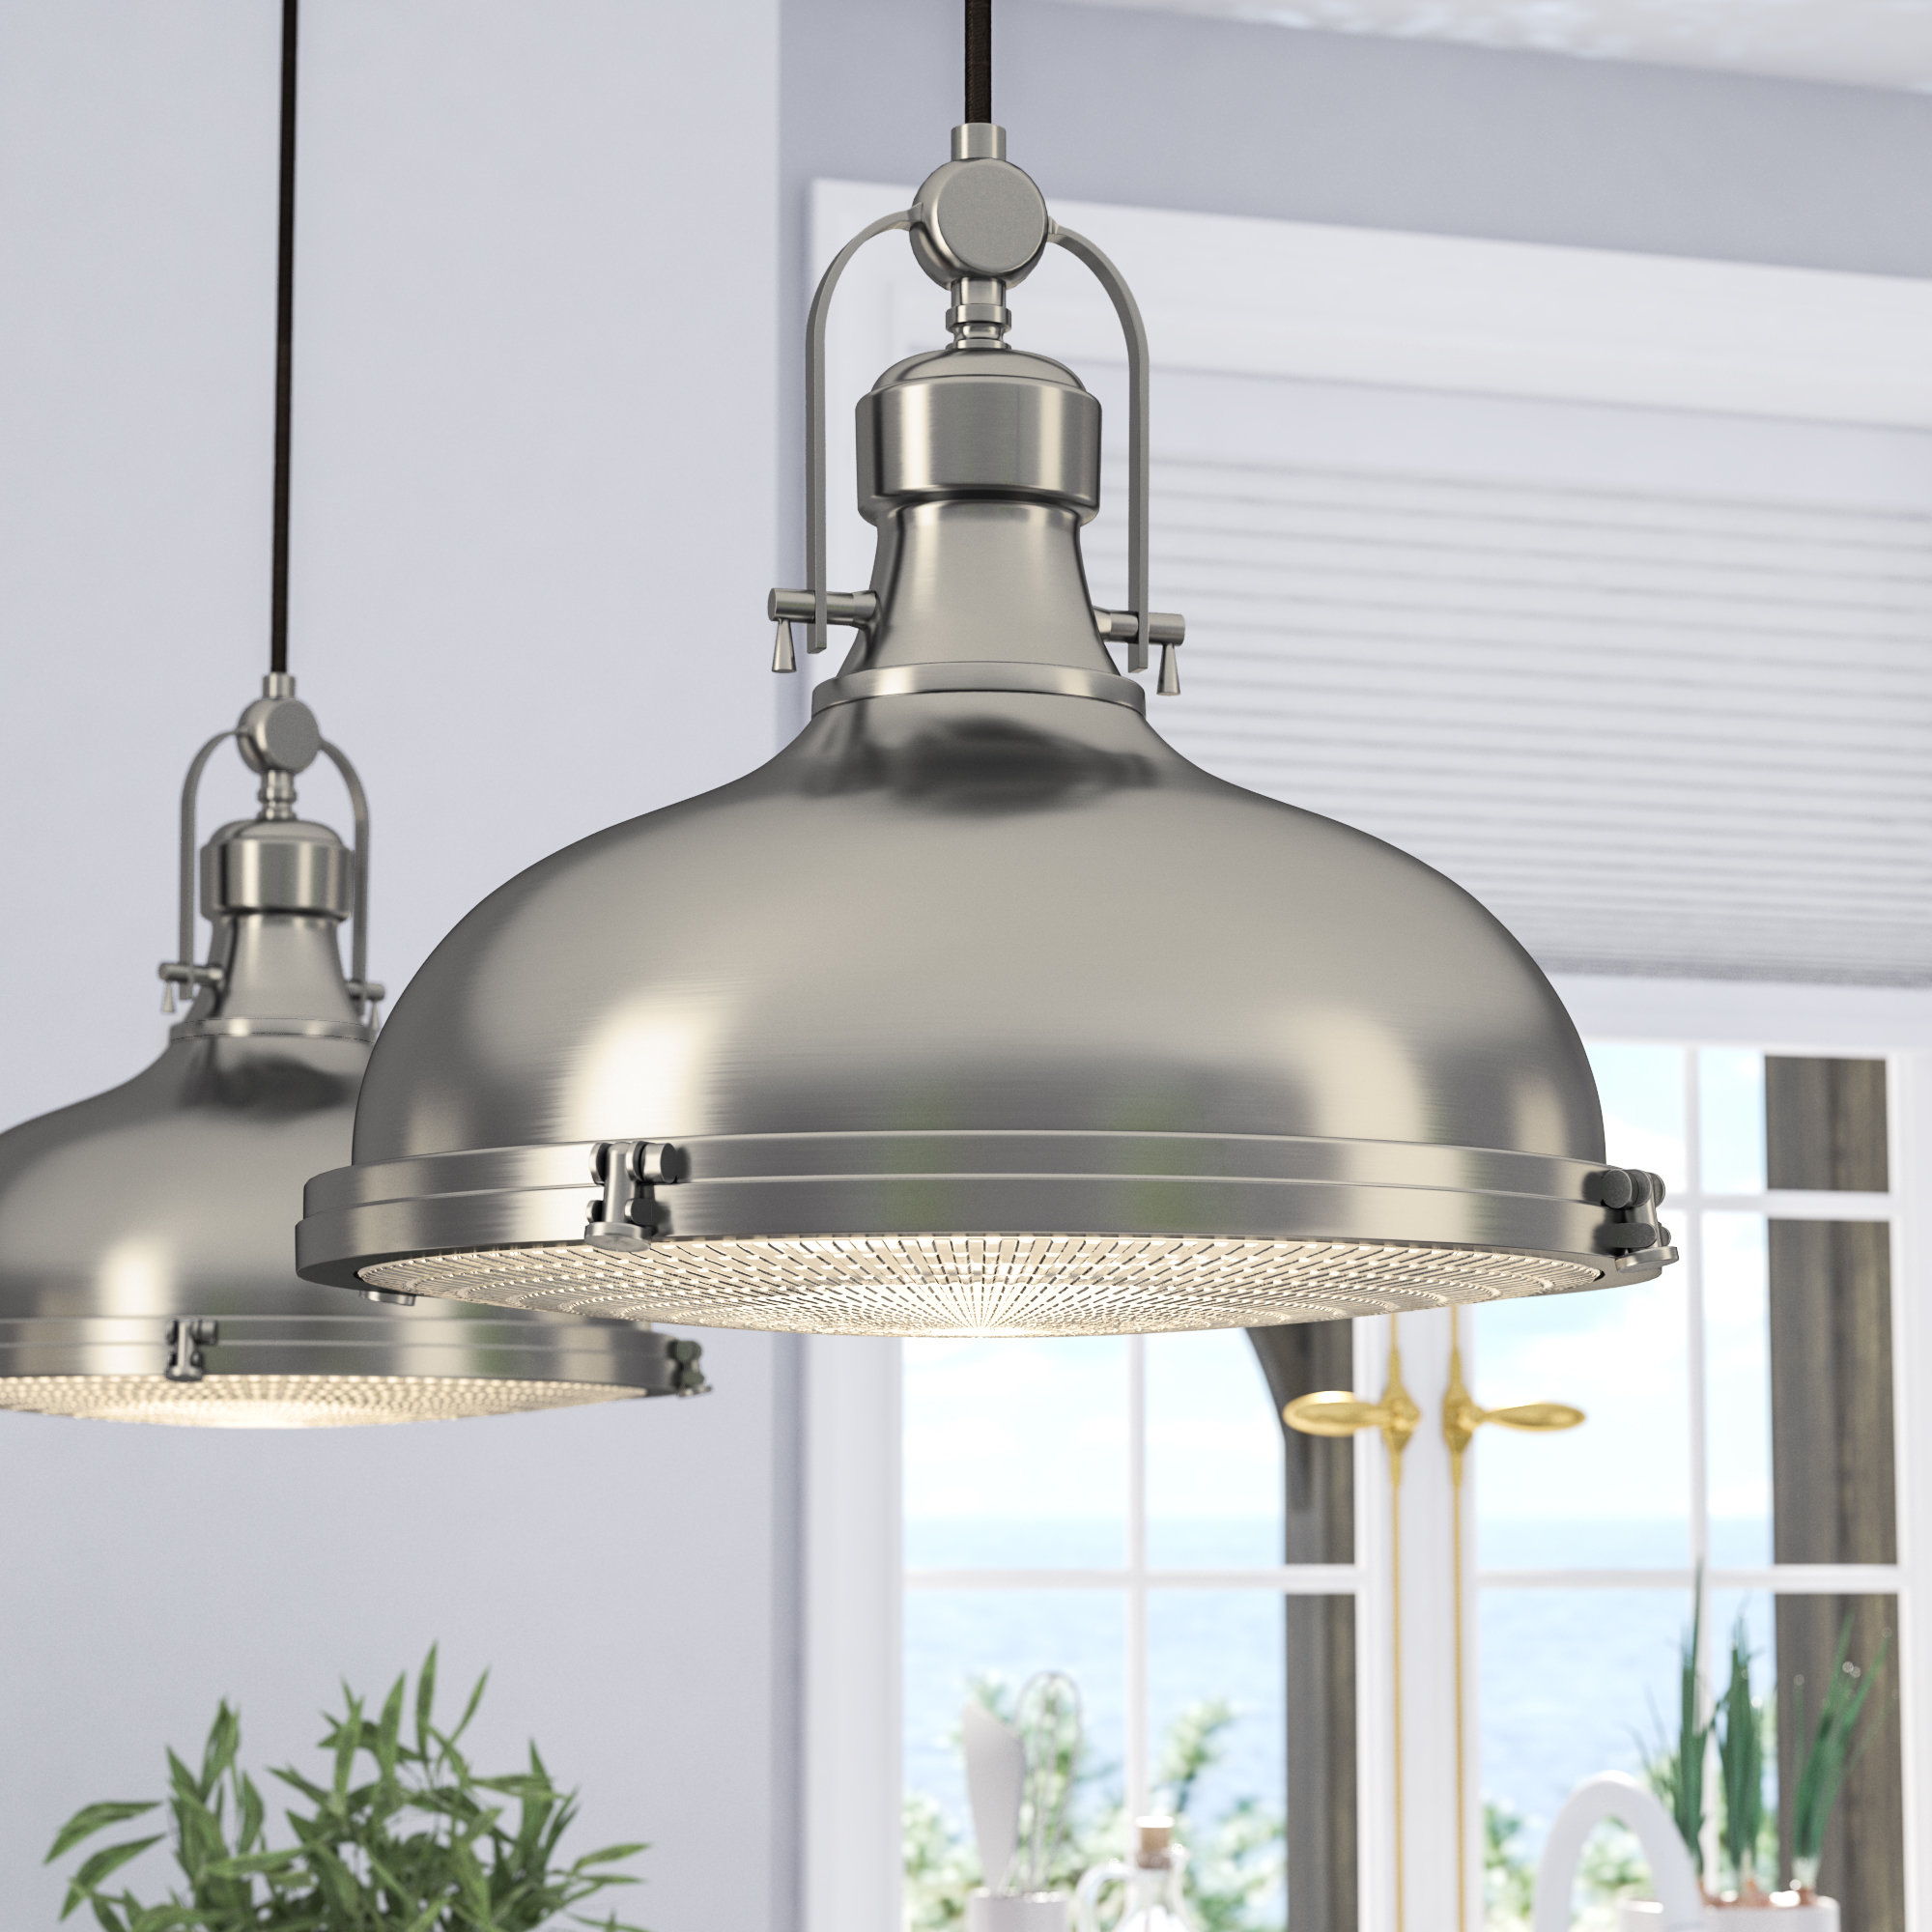 2019 Dome Metal Pendant Lighting You'll Love In  (View 2 of 25)